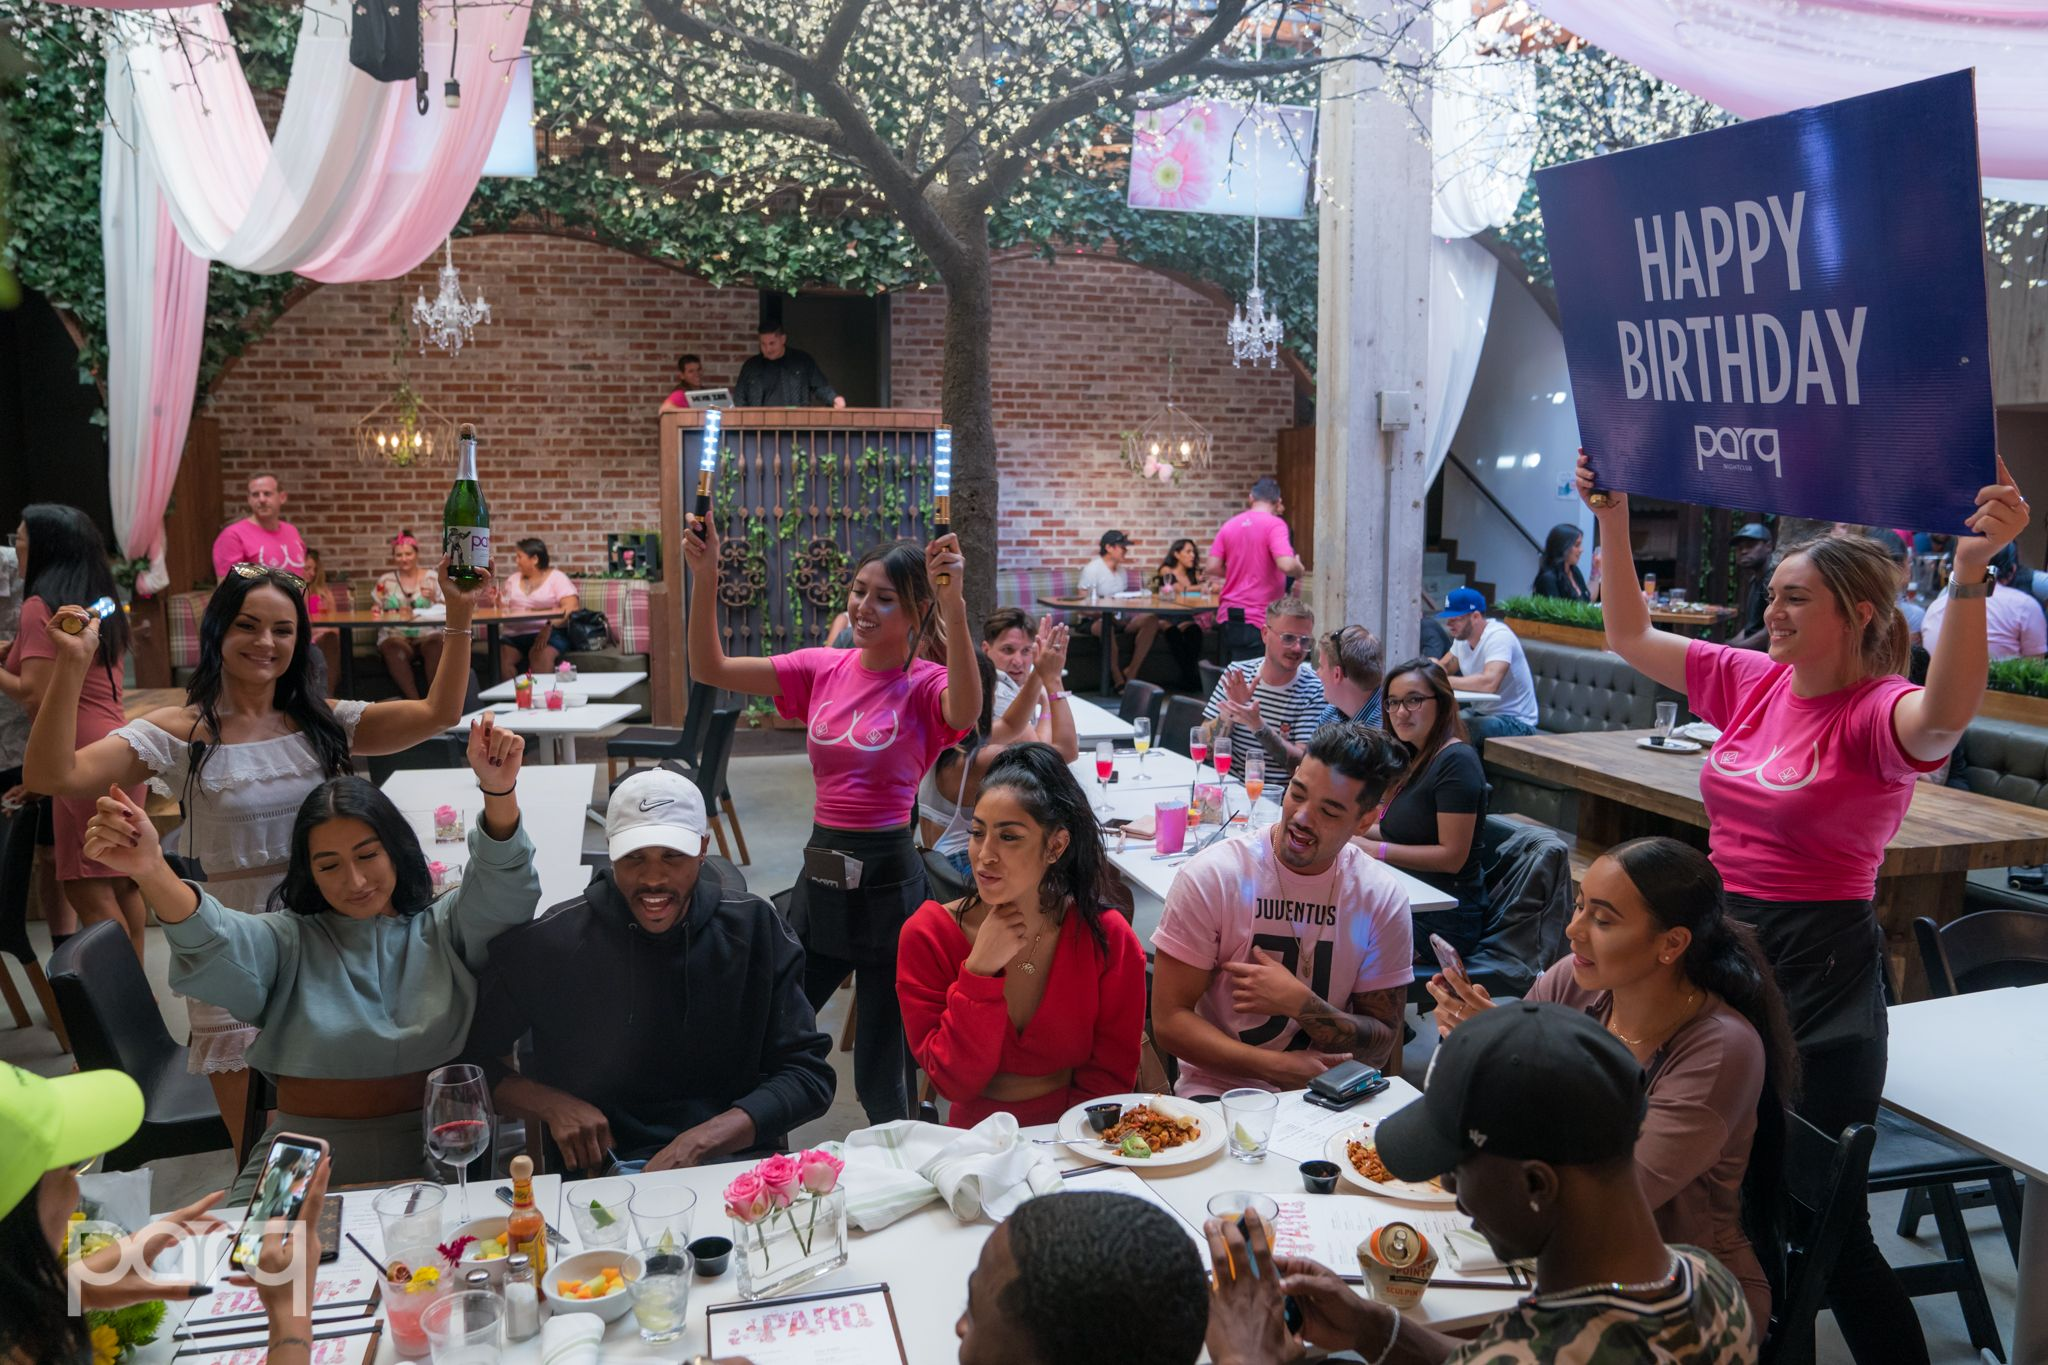 10.21.18 Parq - Breast Brunch-31.jpg